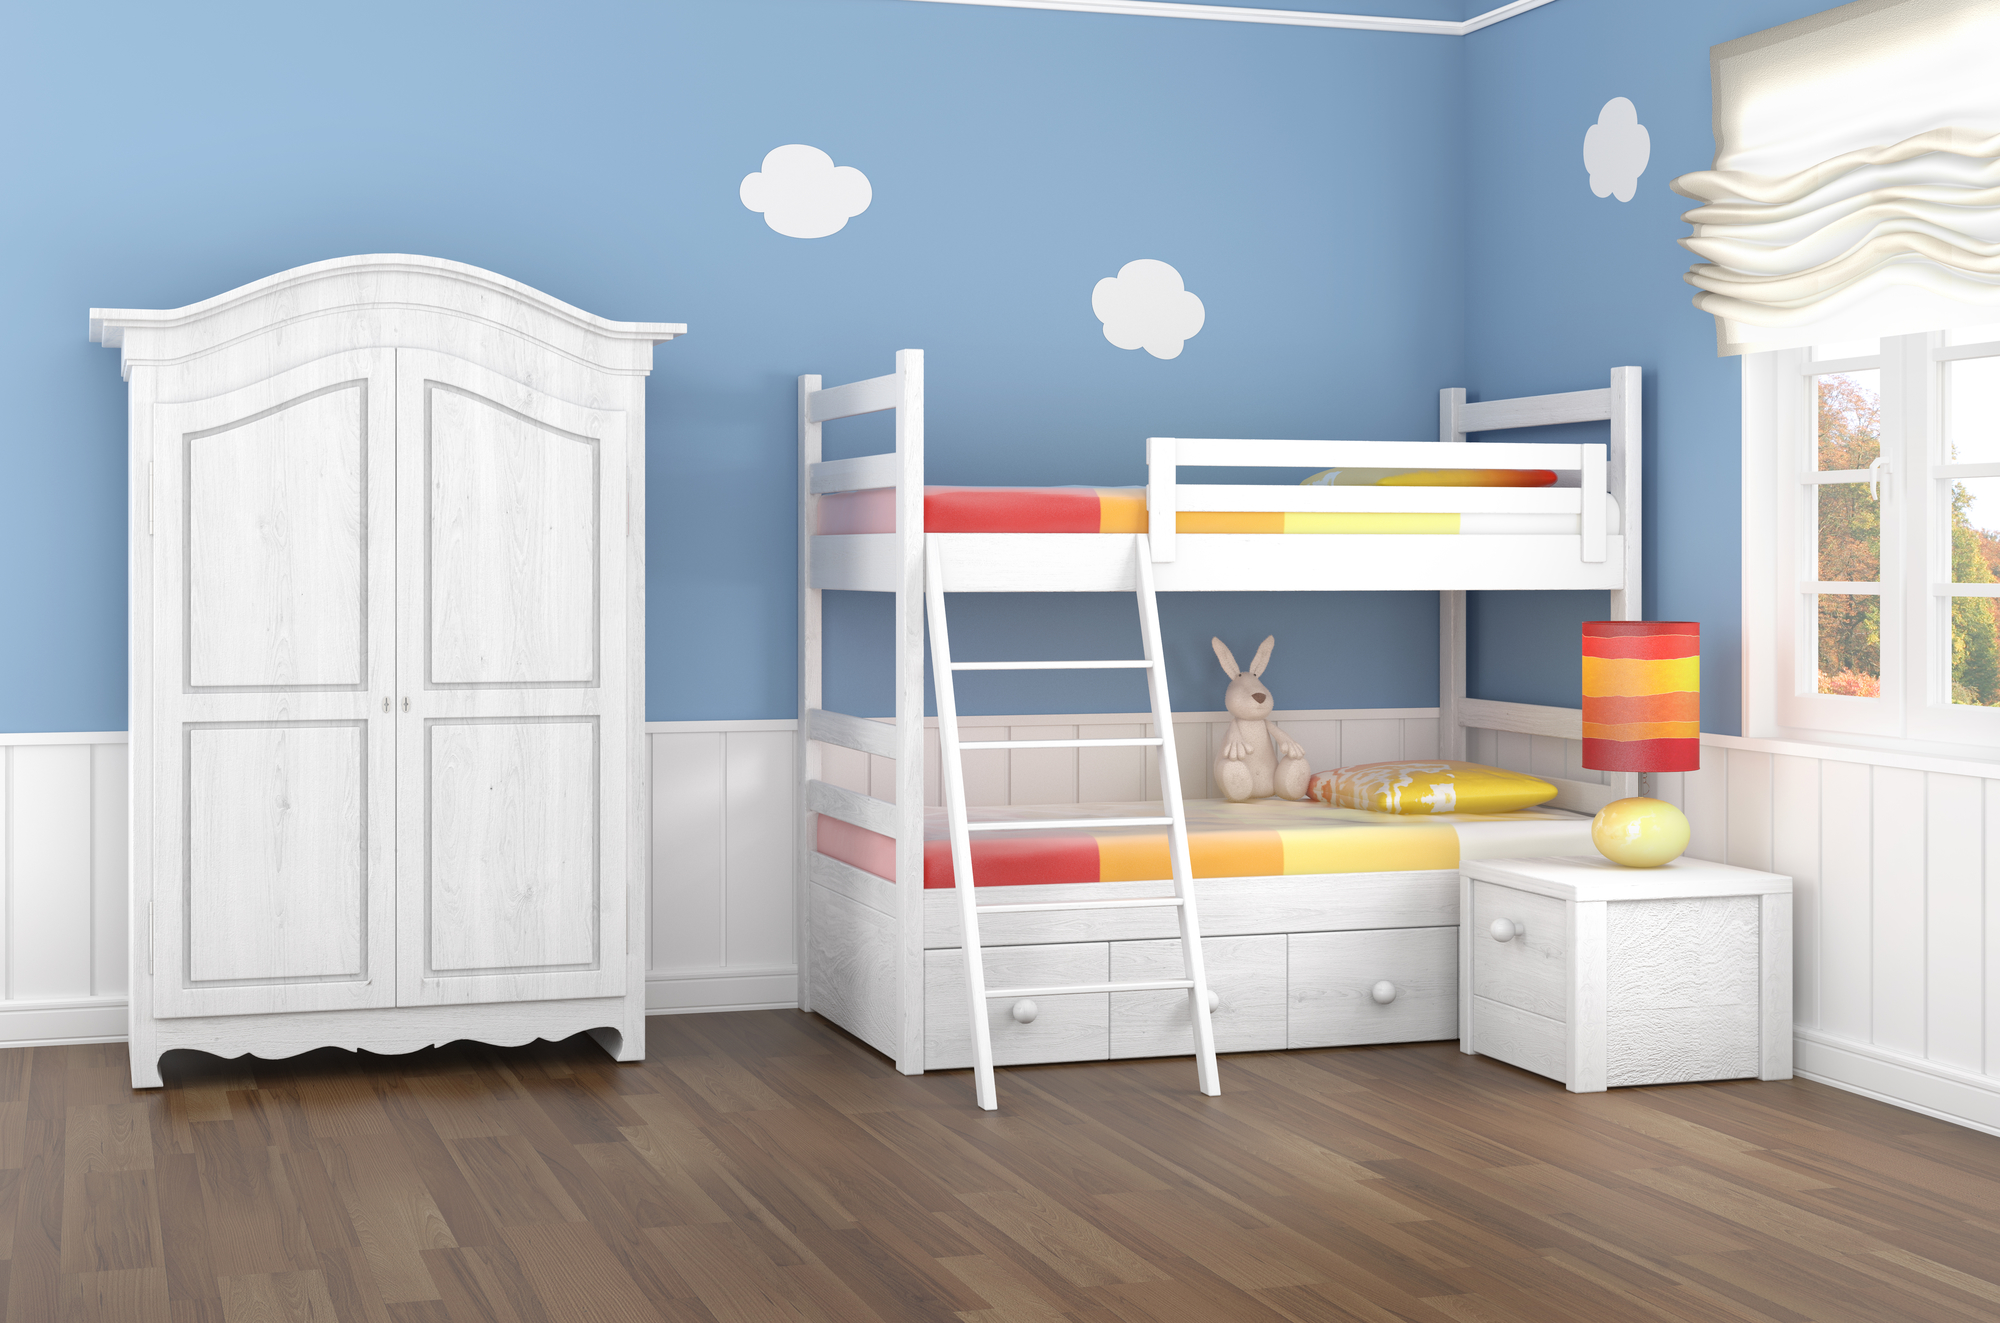 Decorating A Child's Room On A Budget – Tips To Make It Easier